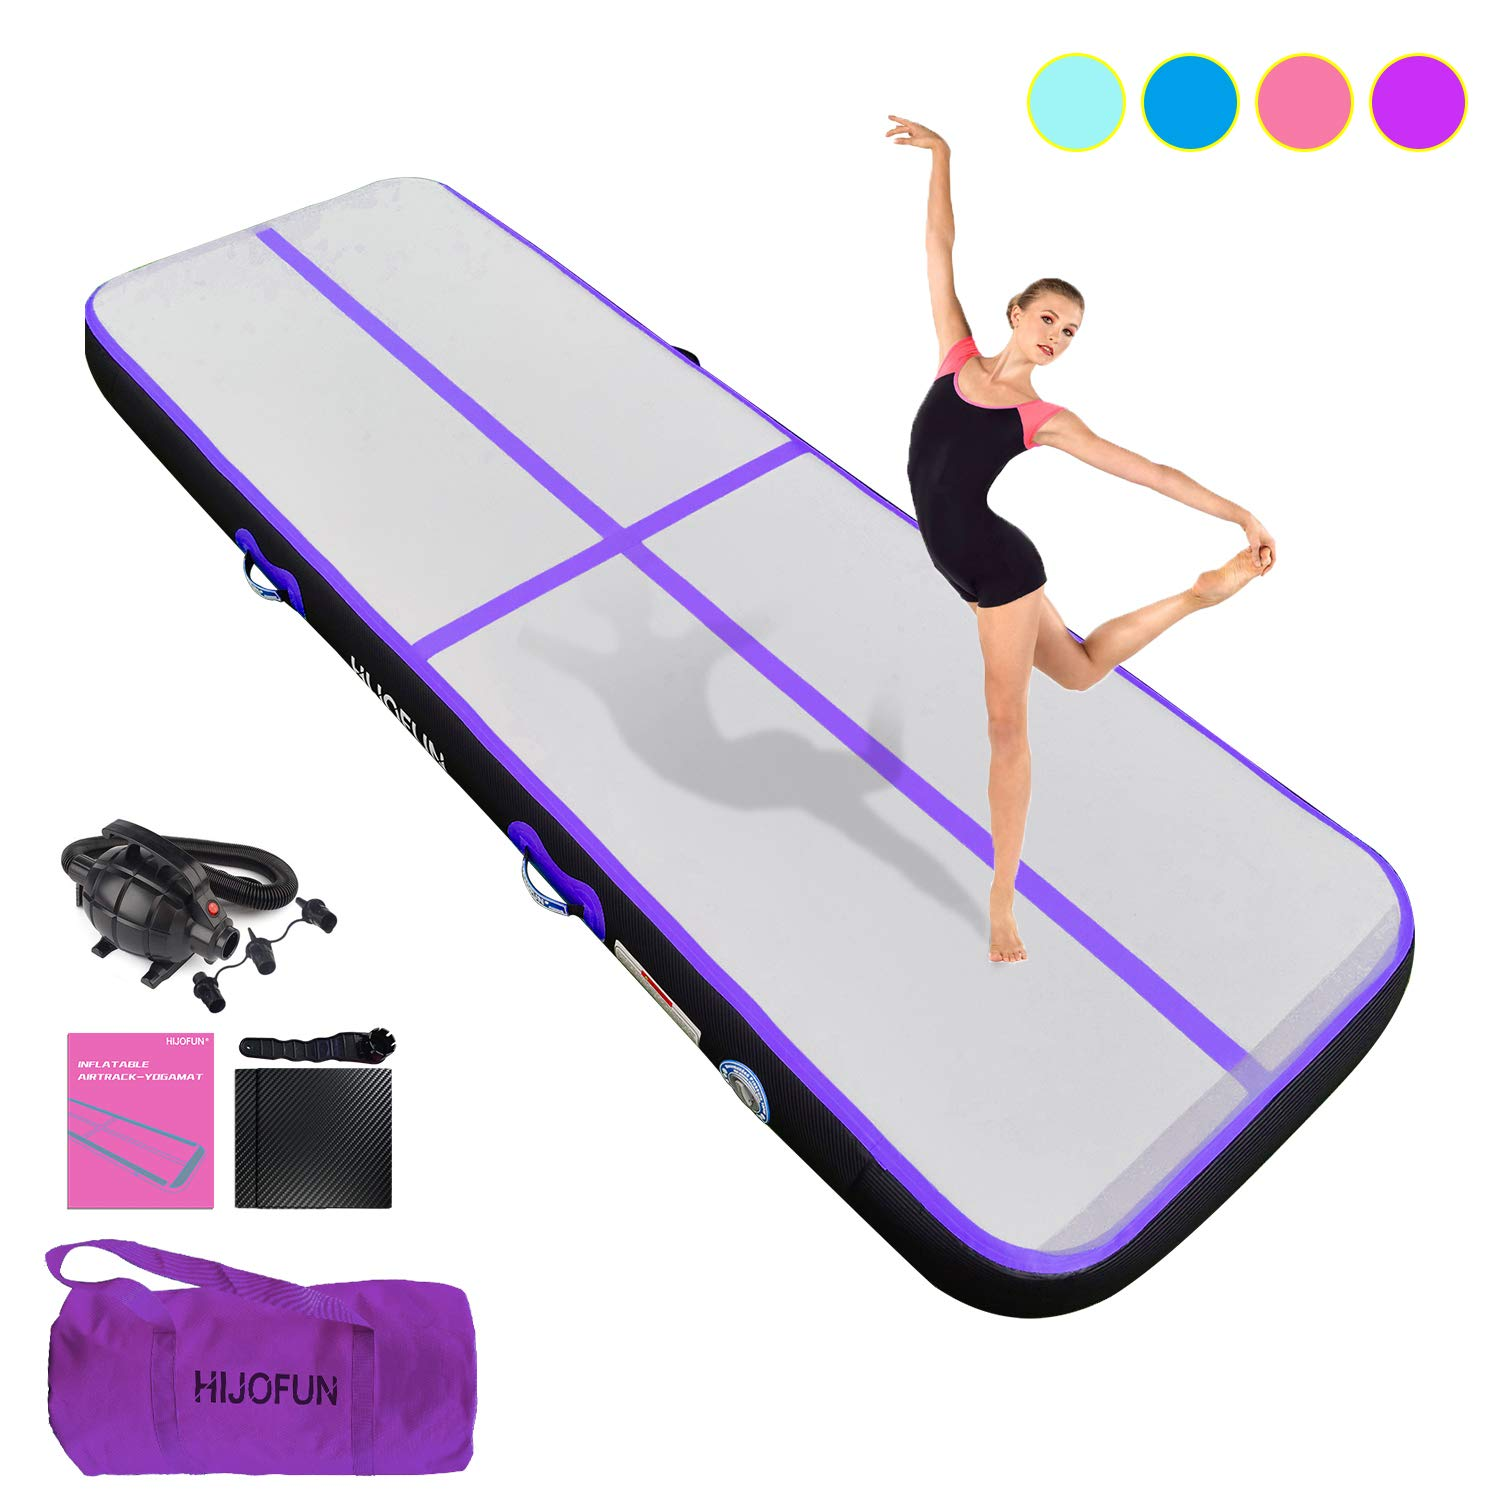 HIJOFUN Premium Air Track 10ft 13ft 16ft 20ft Airtrack Gymnastics Tumbling Mat Inflatable Tumble Track with Electric Air Pump for Home Use/Gym/Yoga/Training/Cheerleading/Outdoor/Beach/Park